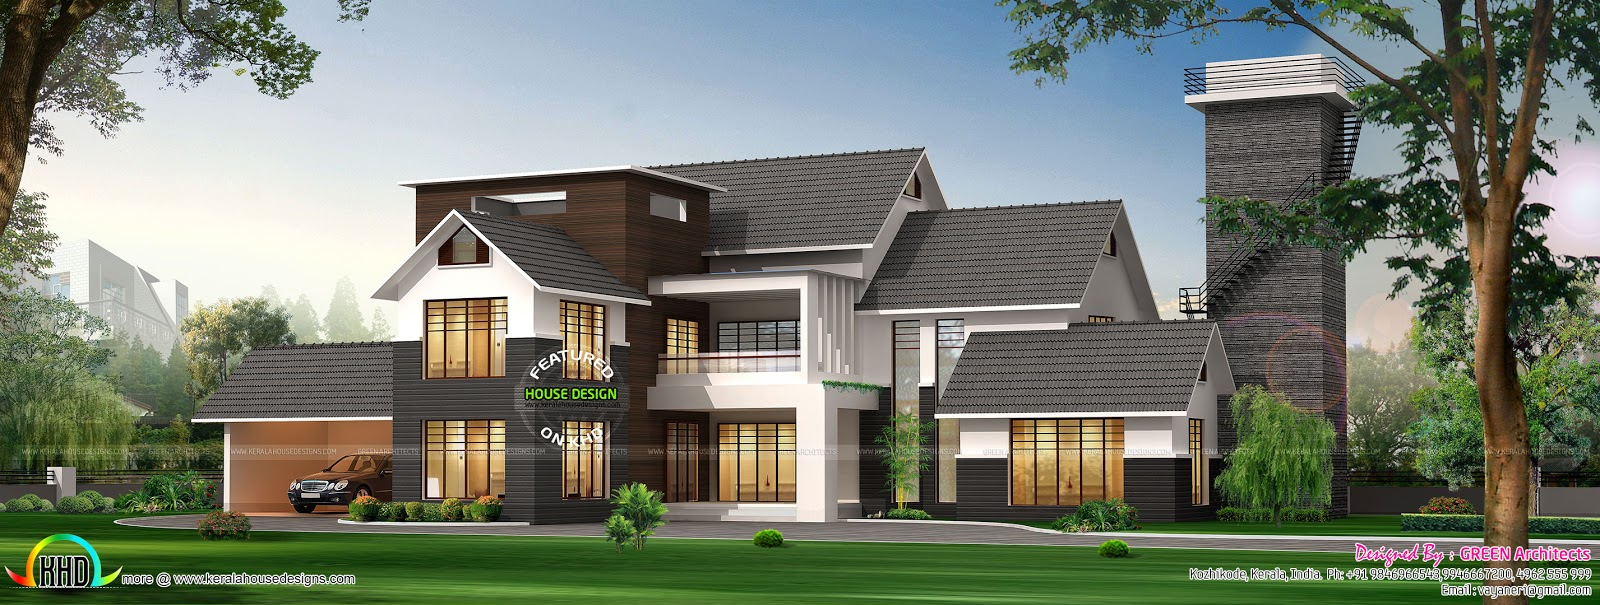 January 2016 kerala home design and floor plans for Villa type house plans